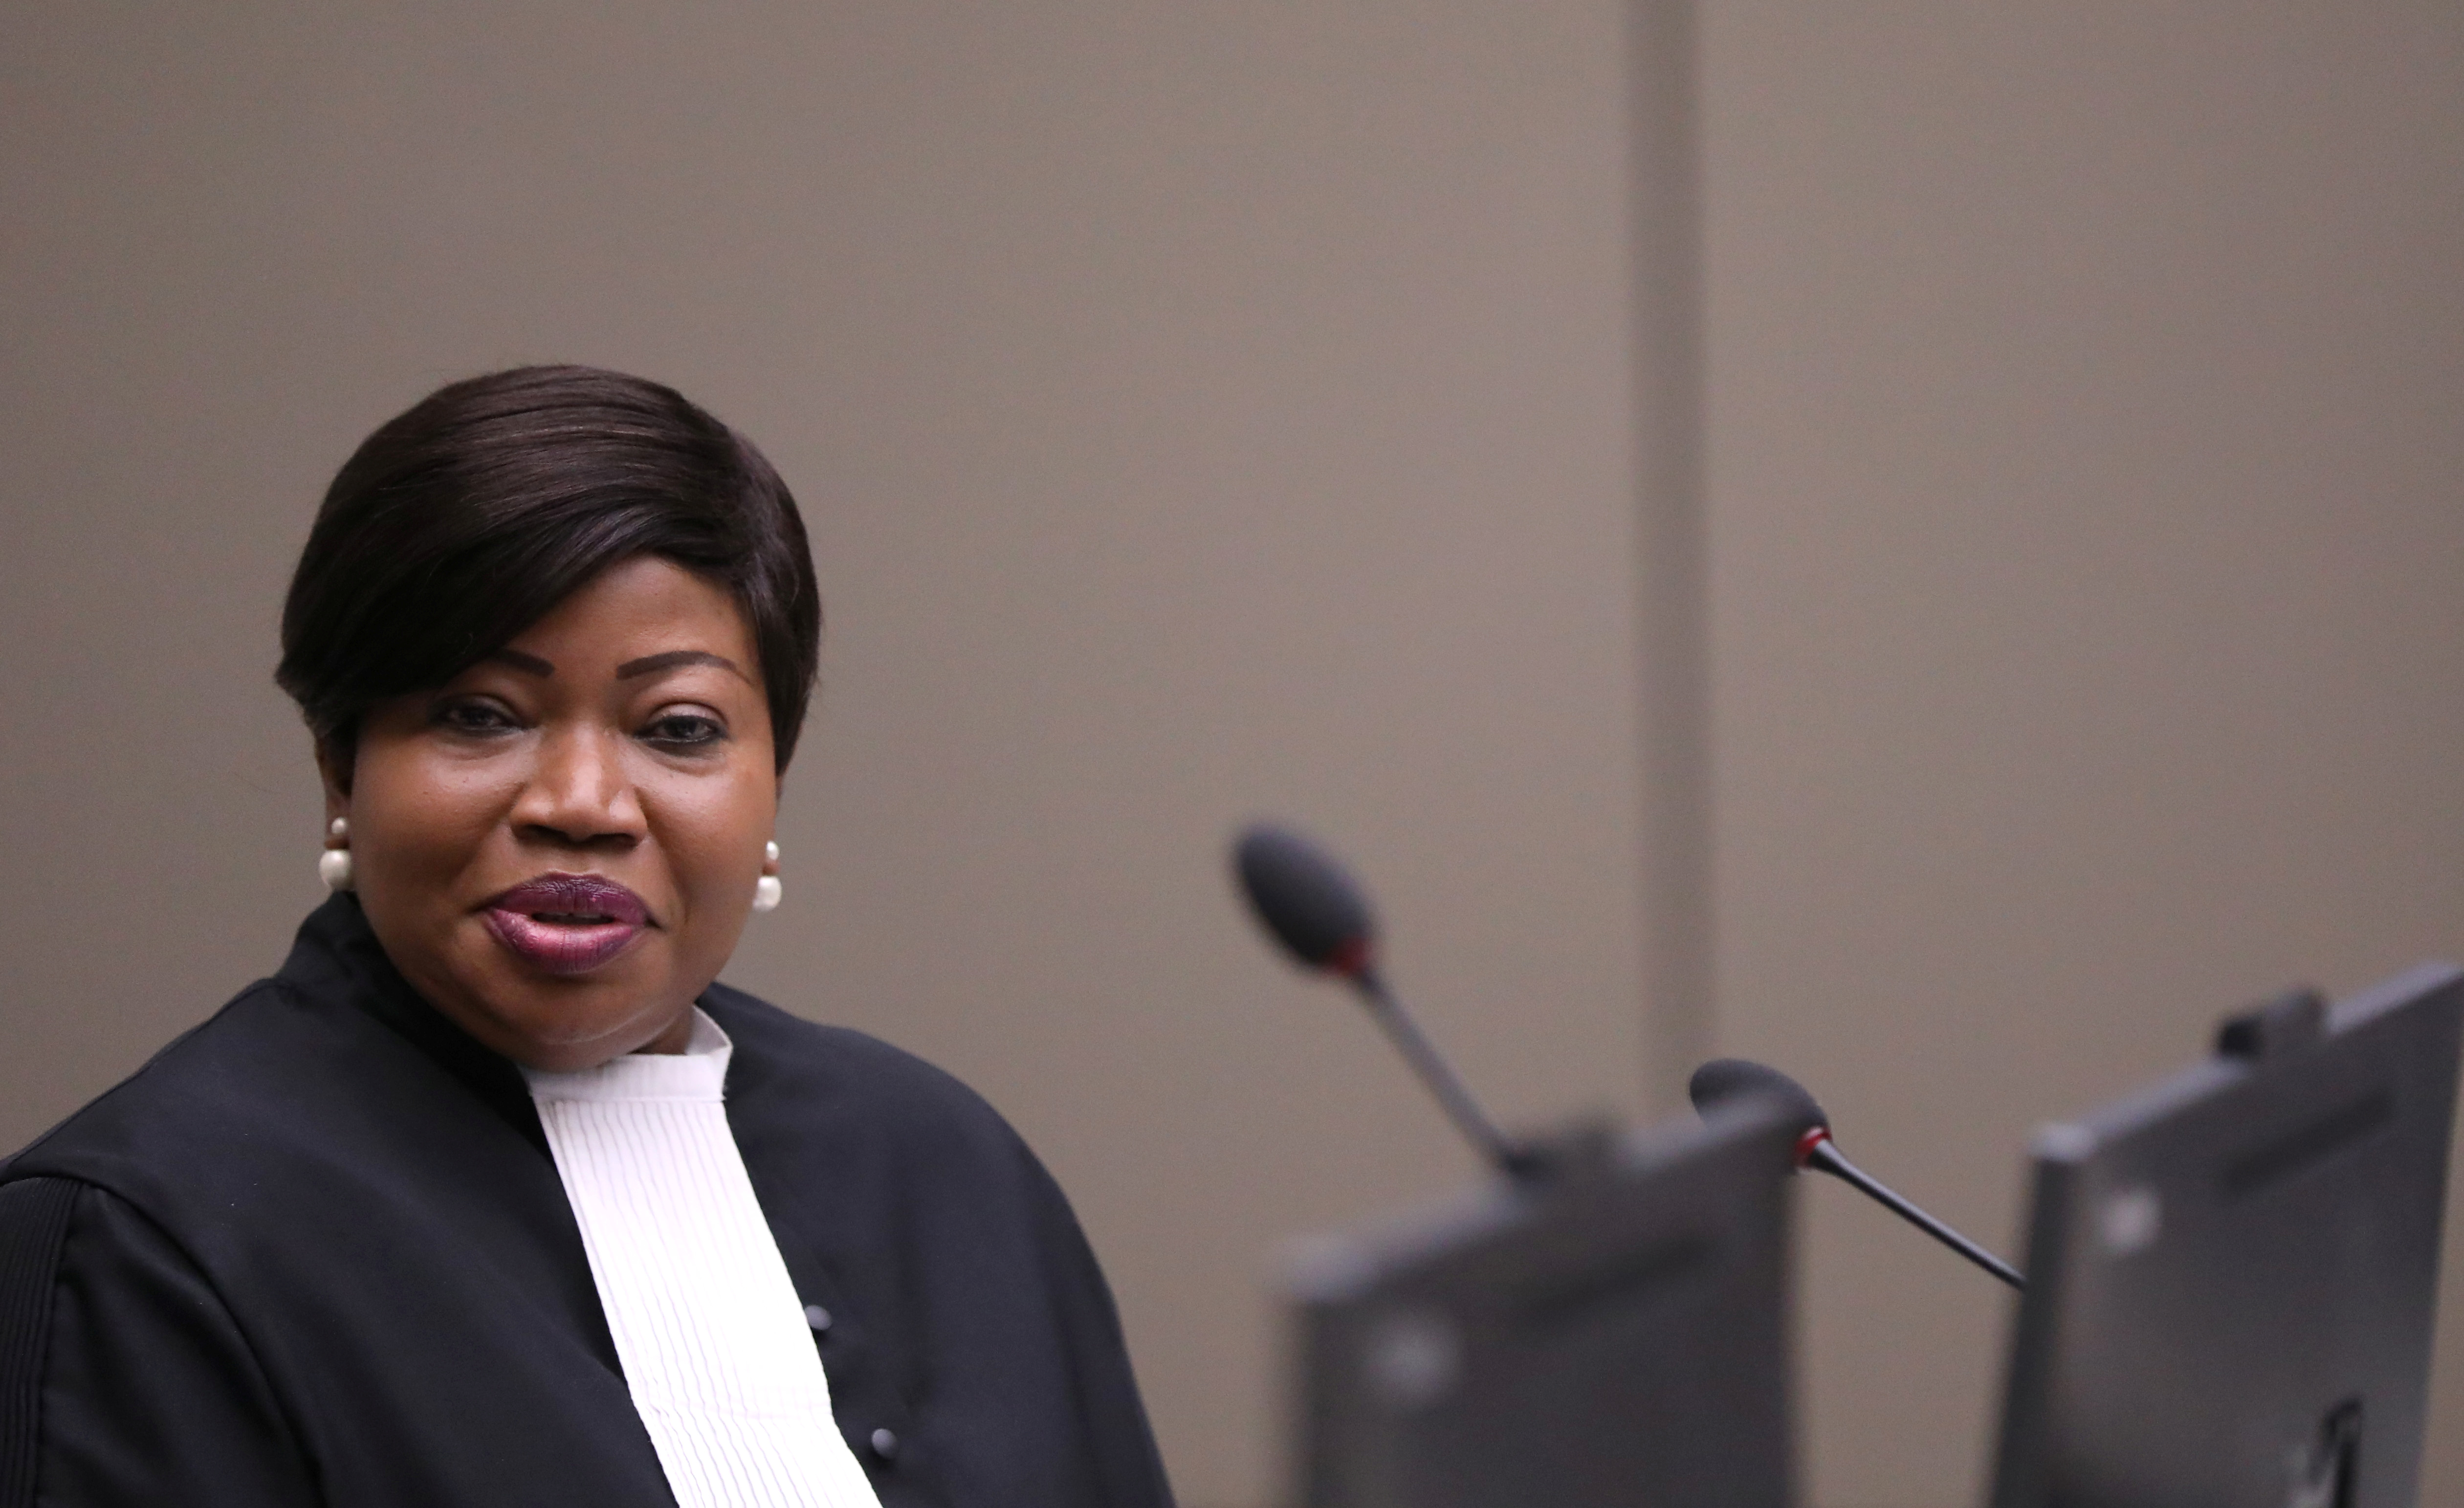 Public Prosecutor Fatou Bensouda attends the trial for Malian Islamist militant Al-Hassan Ag Abdoul Aziz Ag Mohamed Ag Mahmoud at the ICC (International Criminal Court) in the Hague, the Netherlands July 8, 2019. REUTERS/Eva Plevier/Pool